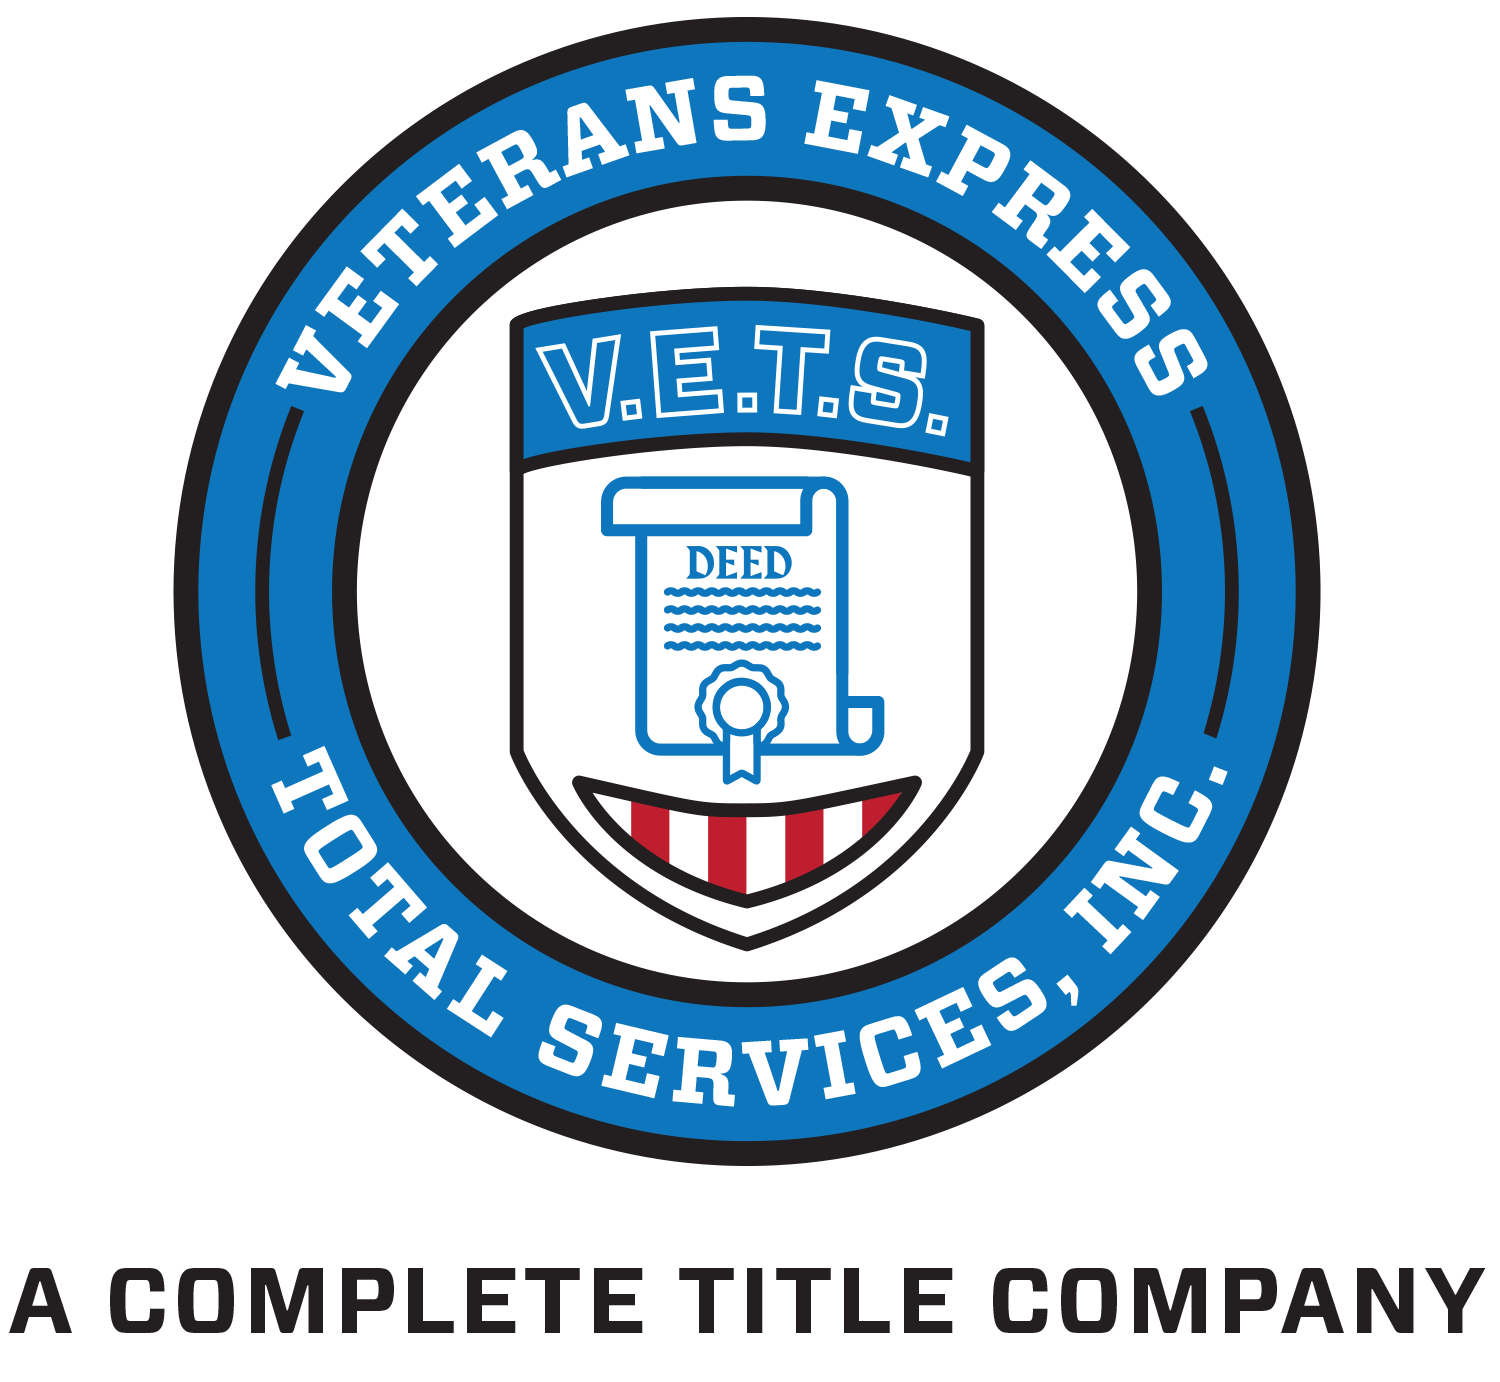 Veterans Express Total Services, Inc.